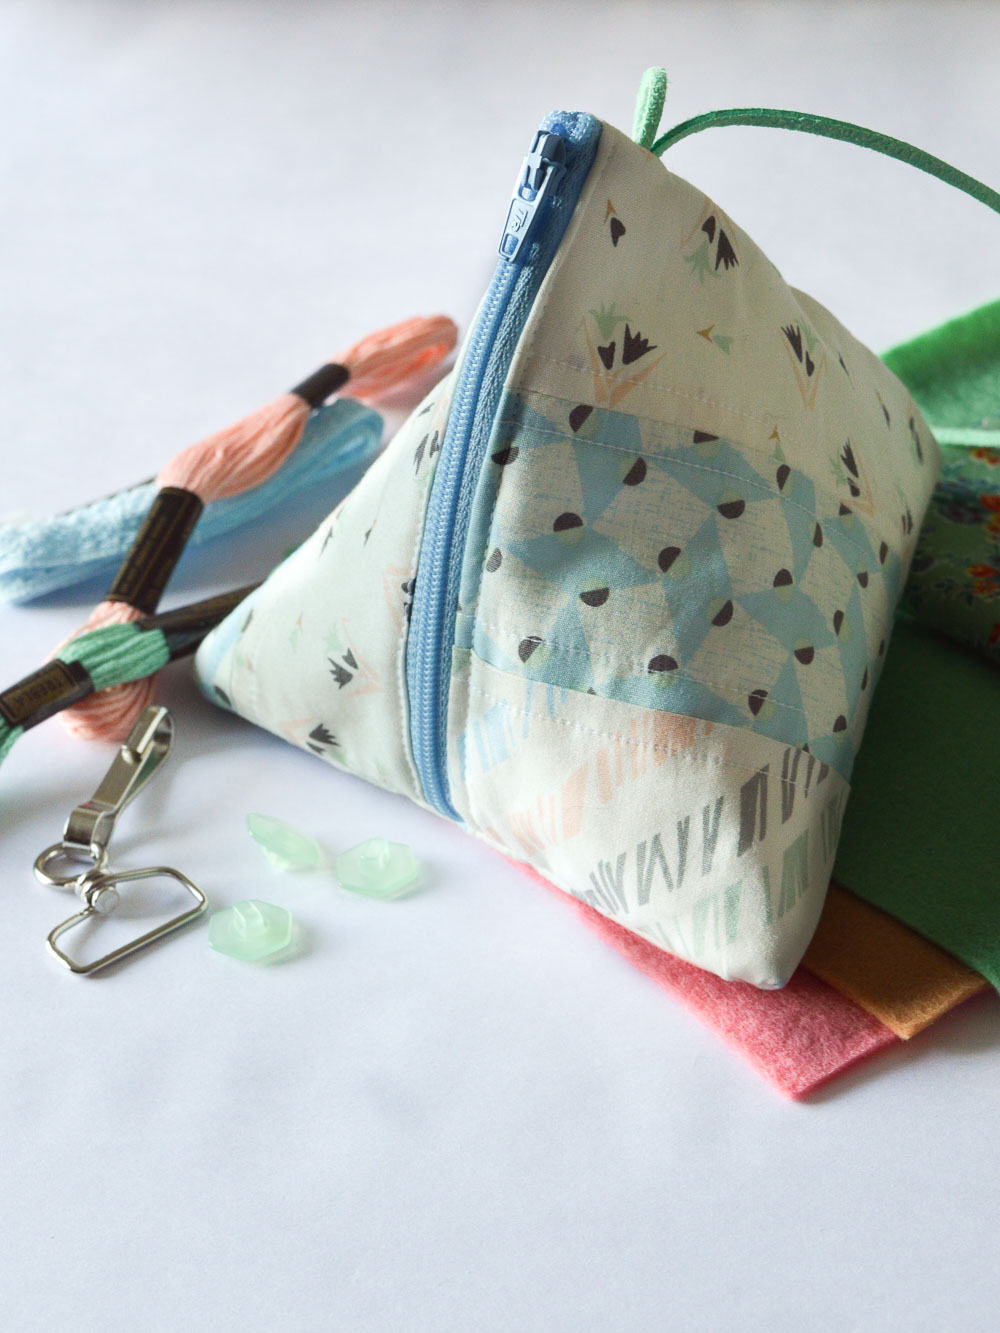 craftclubbox subscription review Crafting Fingers-2